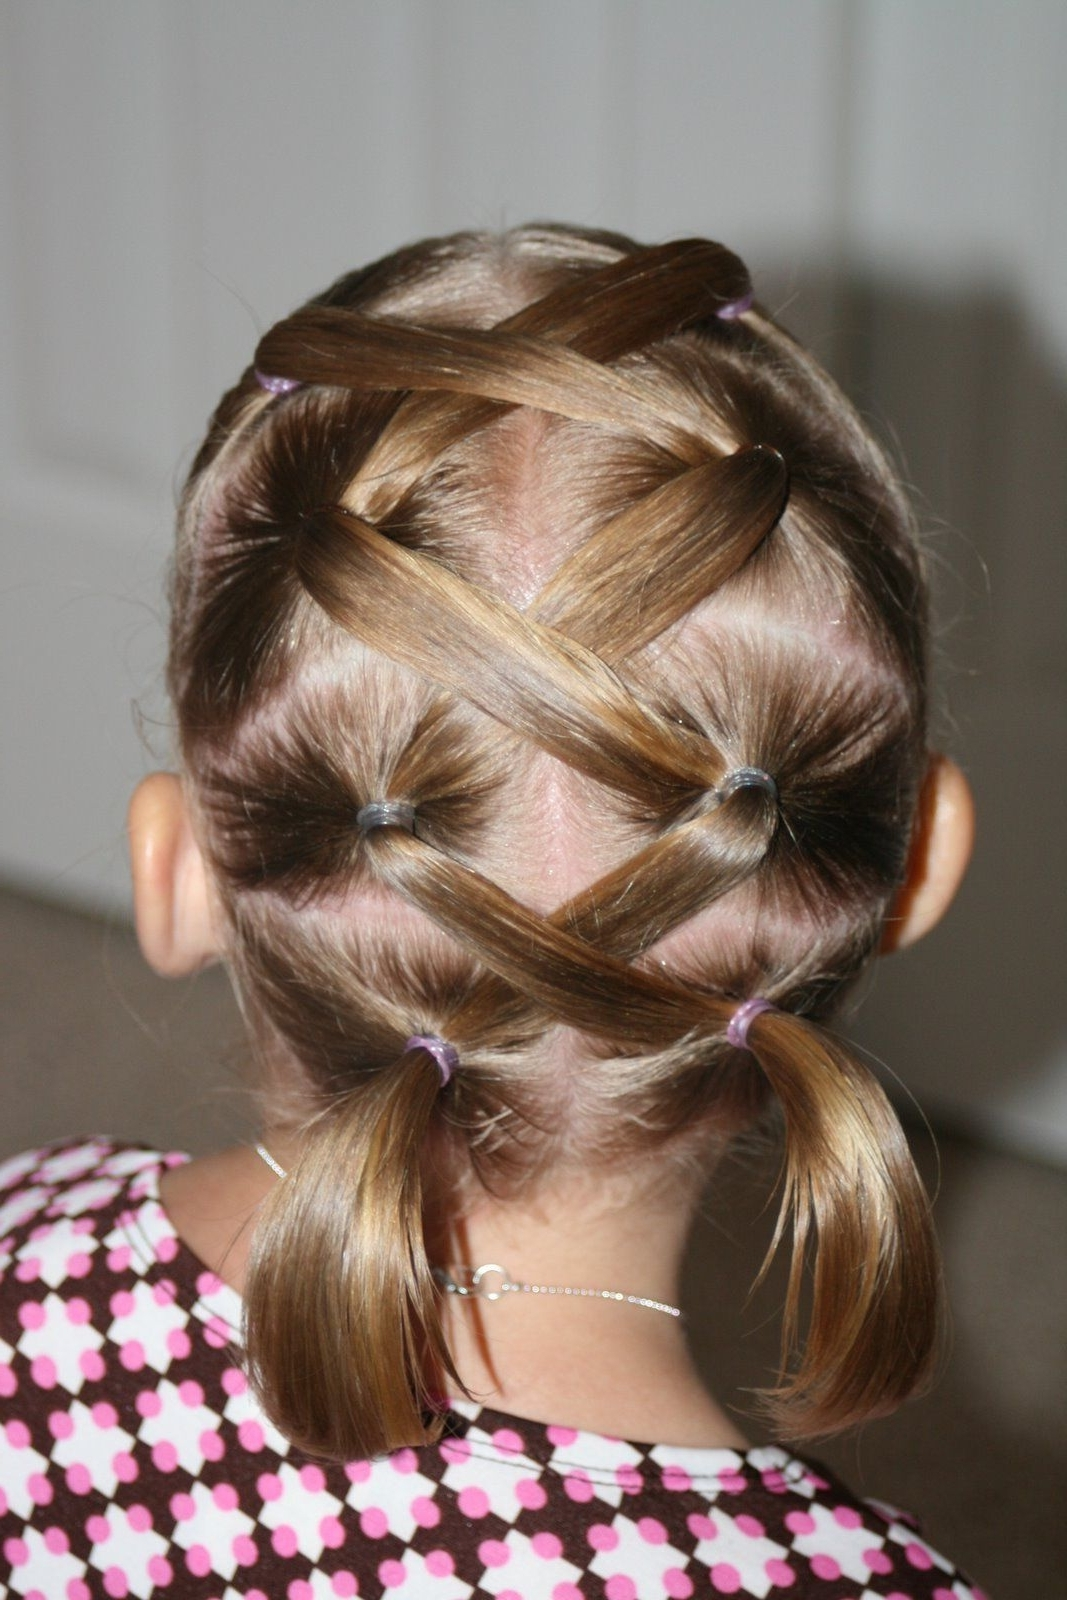 [%Newest Lattice Weave With High Braided Ponytail Inside Img 3804] | Hair | Pinterest | Hair Style, Kid Hairstyles And|Img 3804] | Hair | Pinterest | Hair Style, Kid Hairstyles And Intended For Well Known Lattice Weave With High Braided Ponytail%] (View 1 of 15)